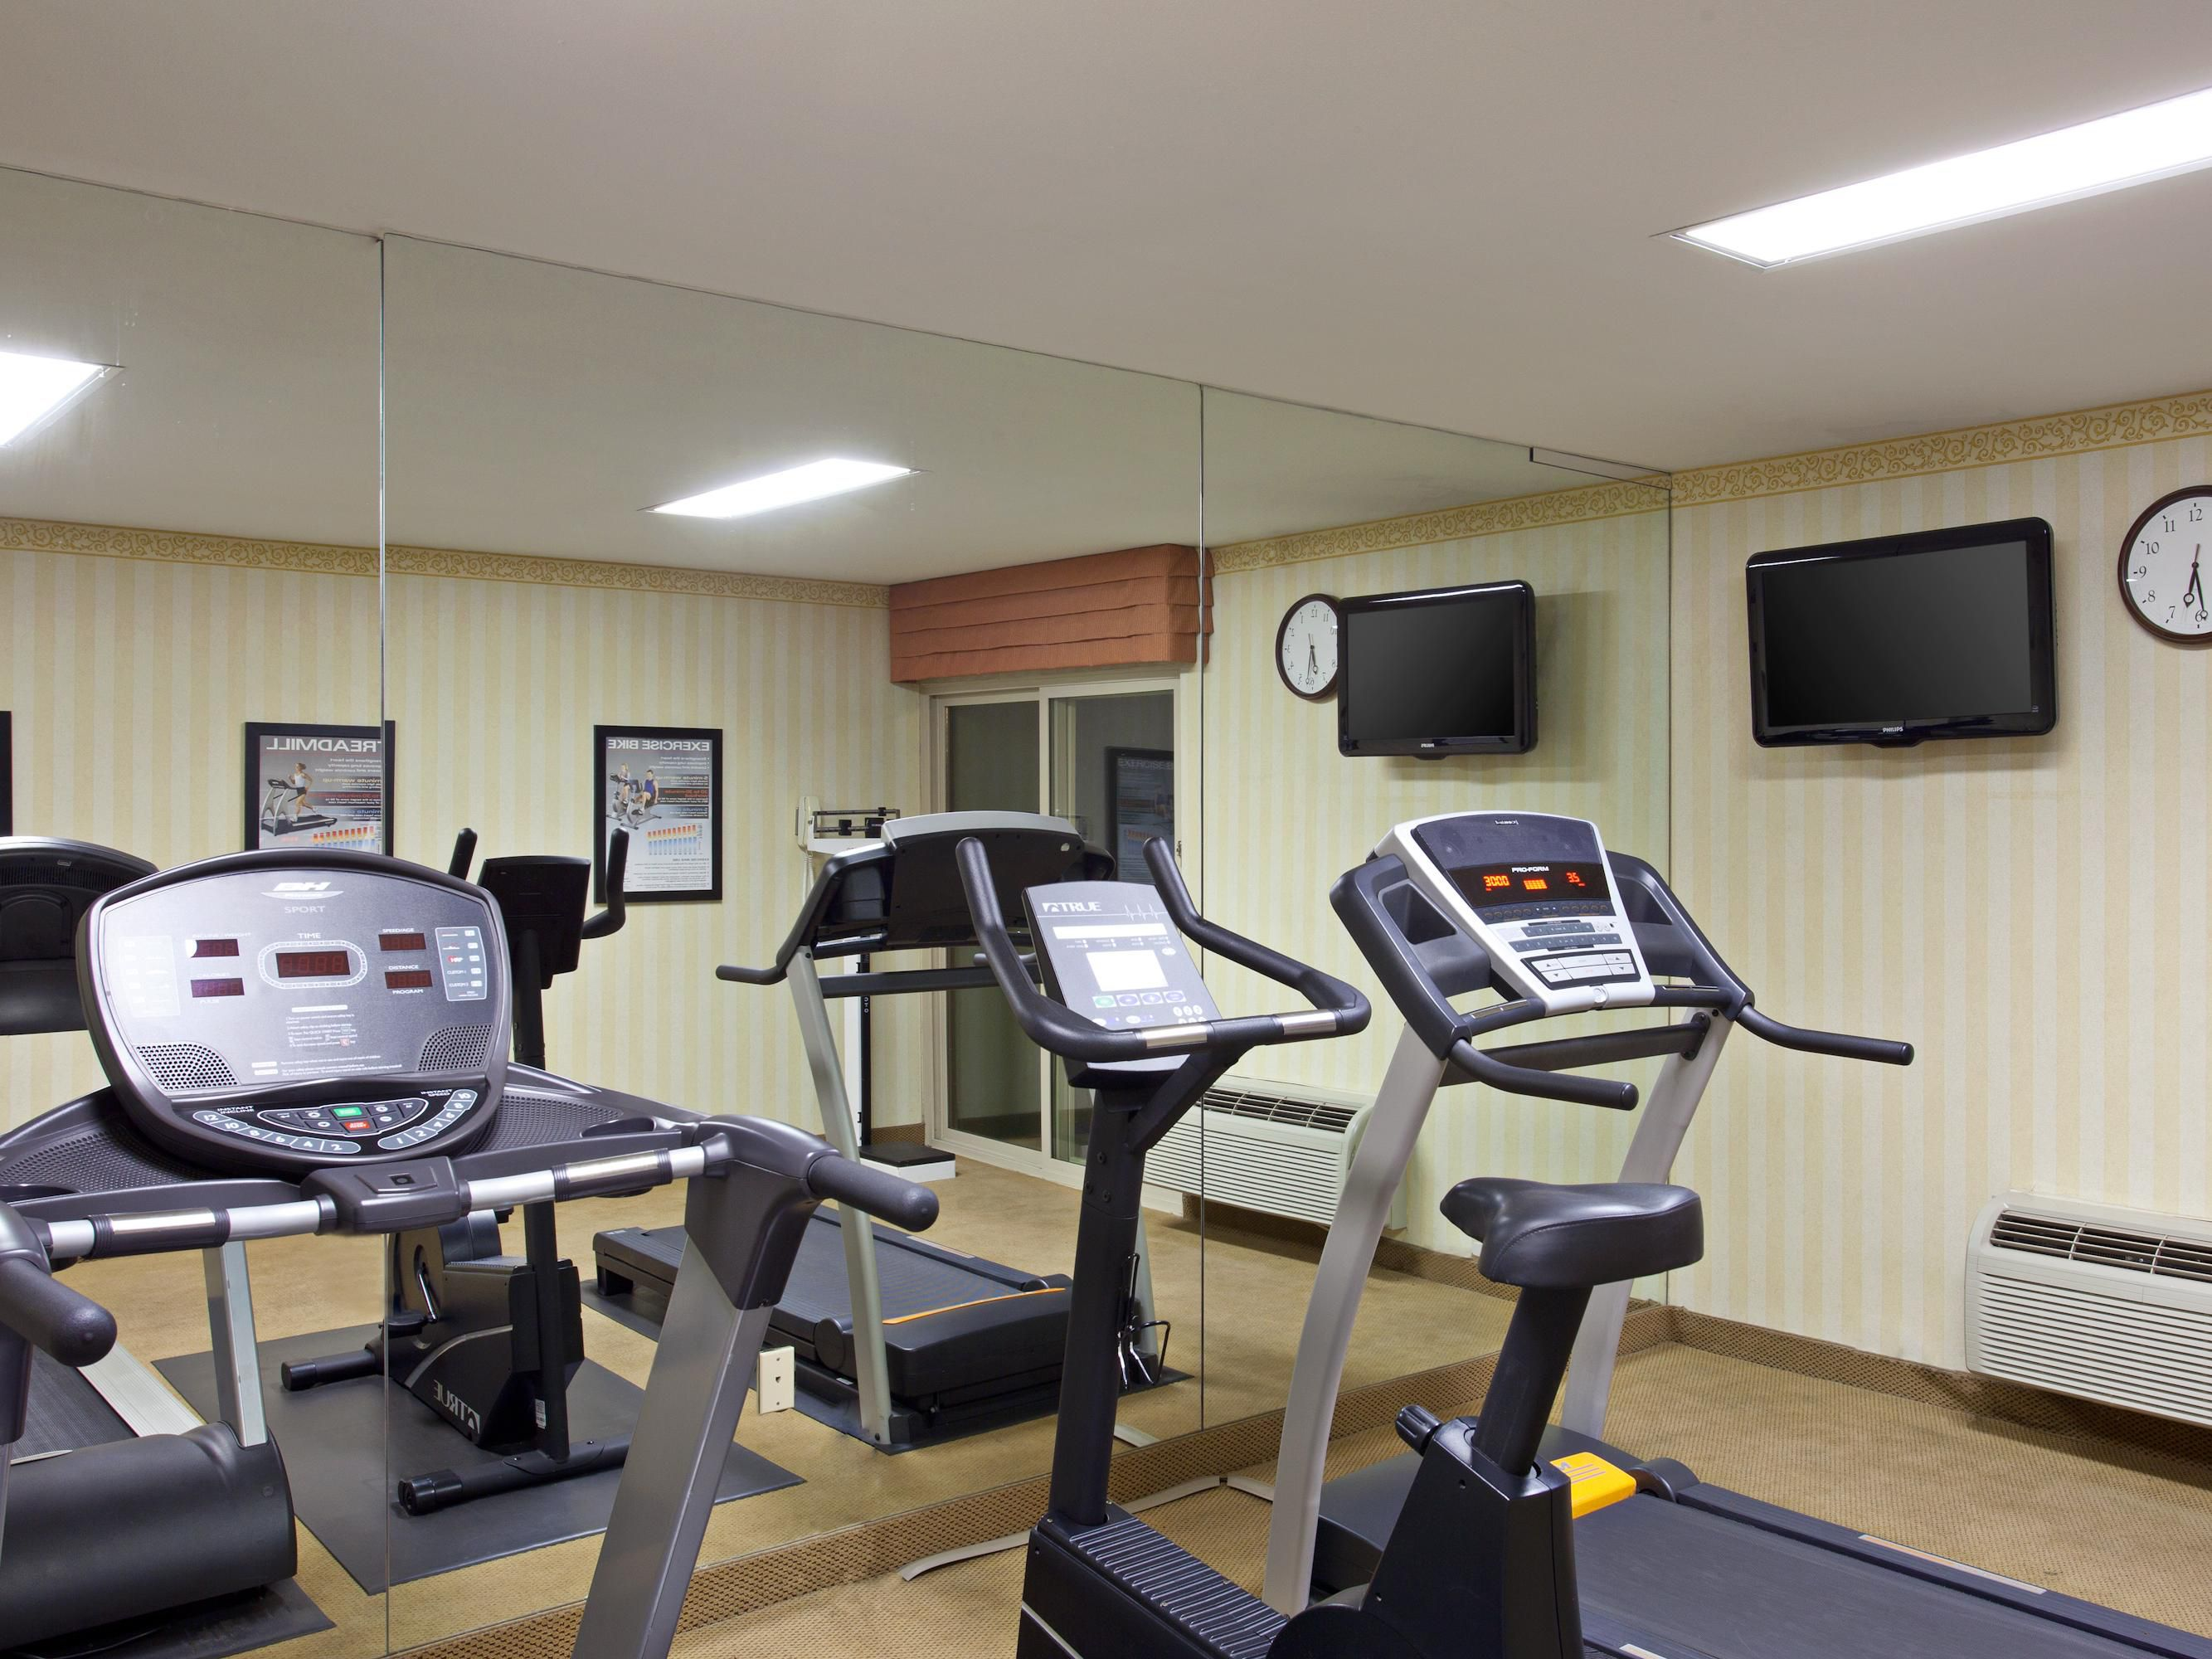 Fitness Center open 5am- 10pm